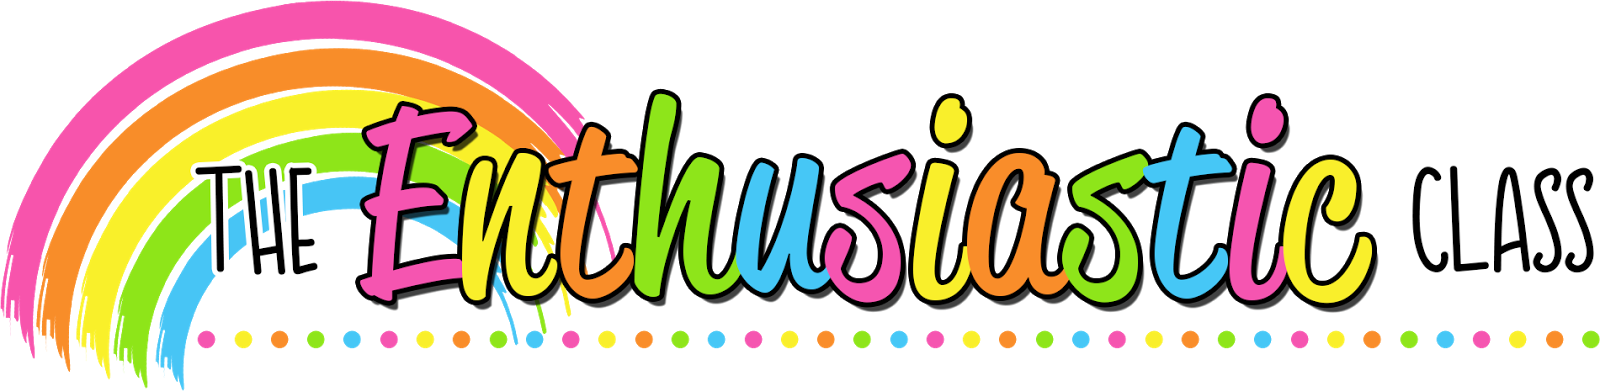 the enthusiastic class. July clipart header